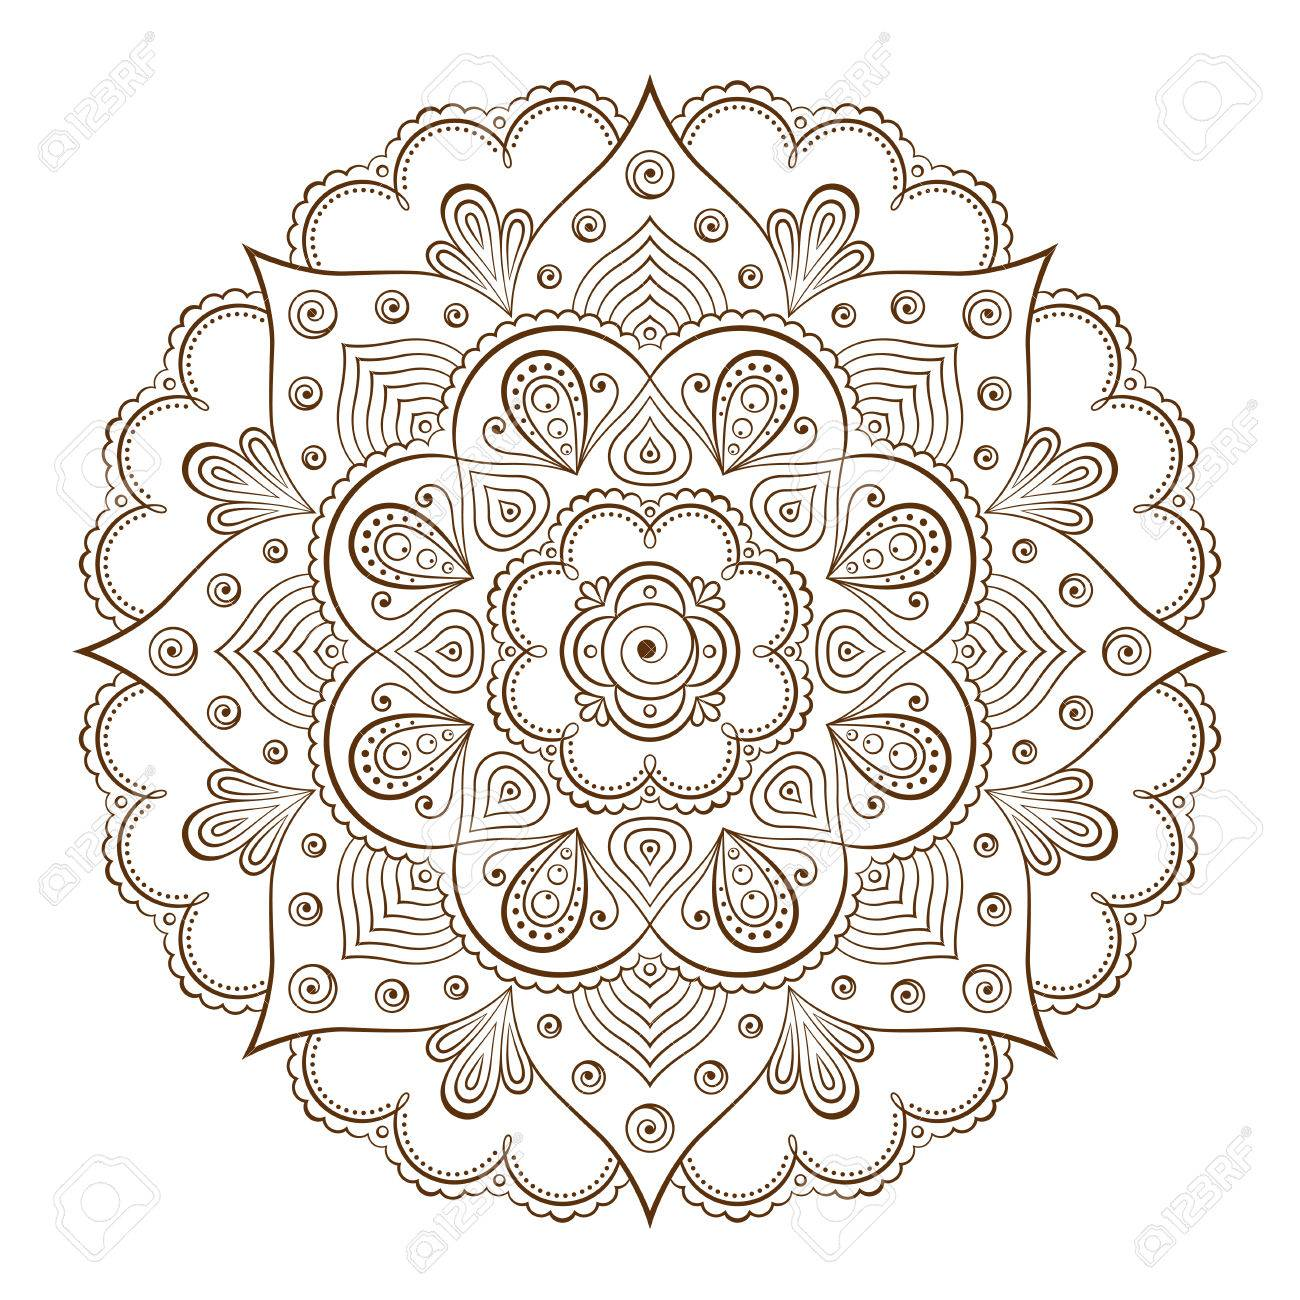 Background Or Tattoo Frames Based On Traditional Asian Ornaments ...